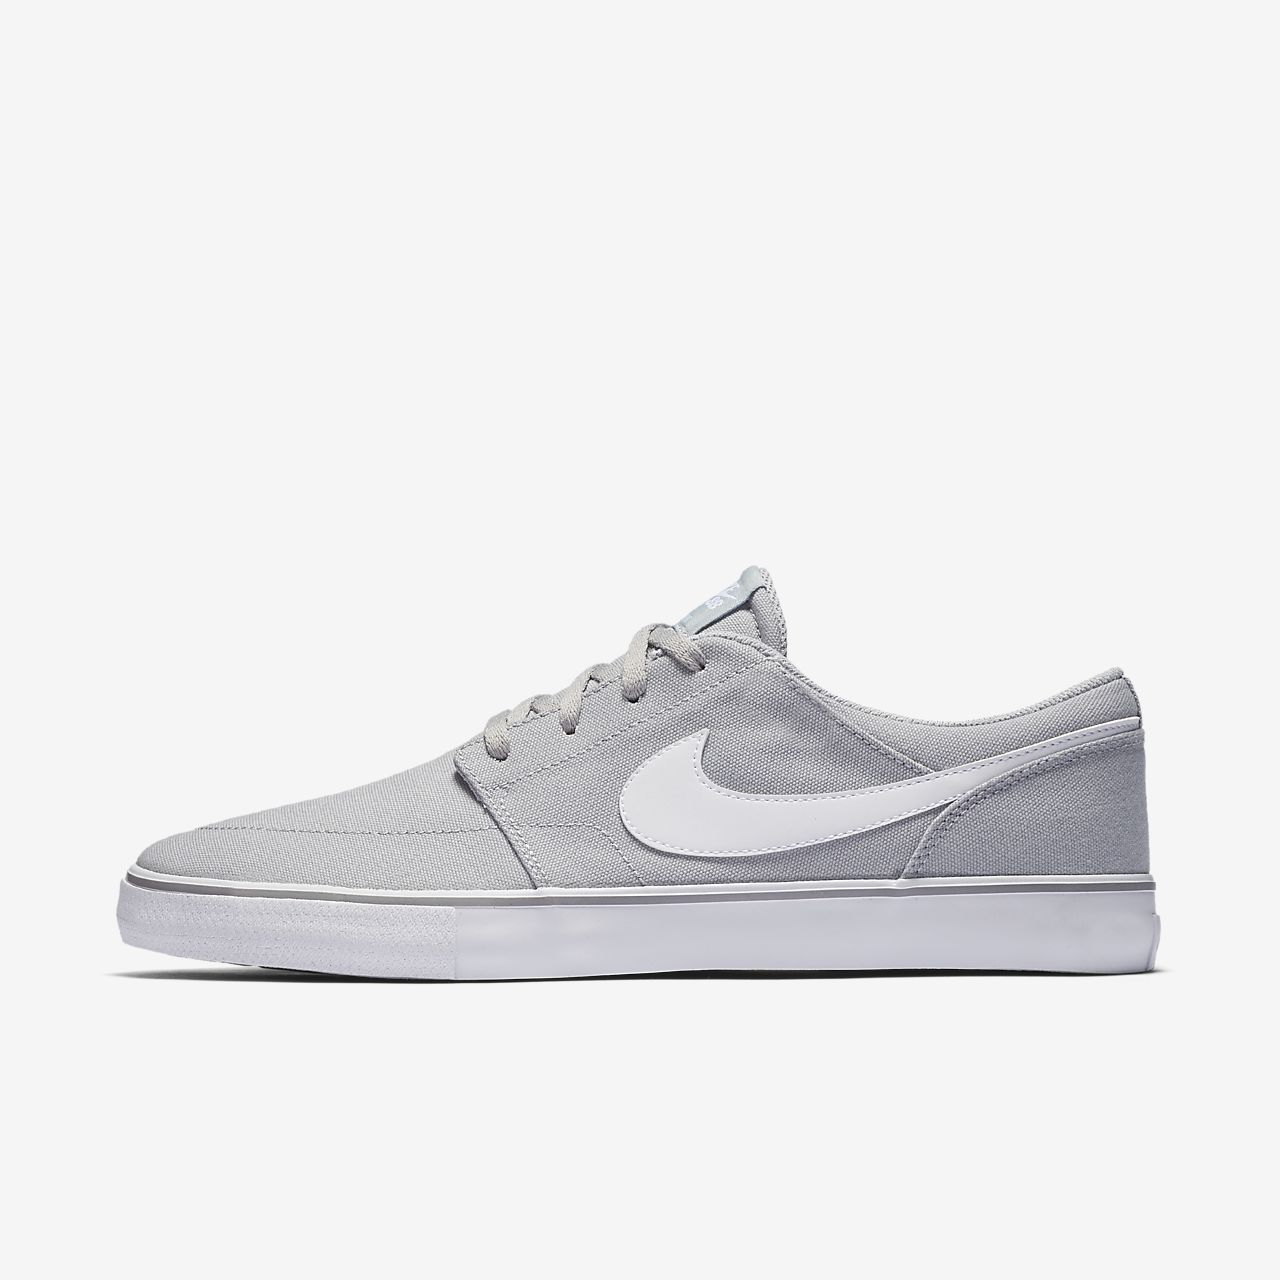 ... Nike SB Solarsoft Portmore II Canvas Men's Skateboarding Shoe